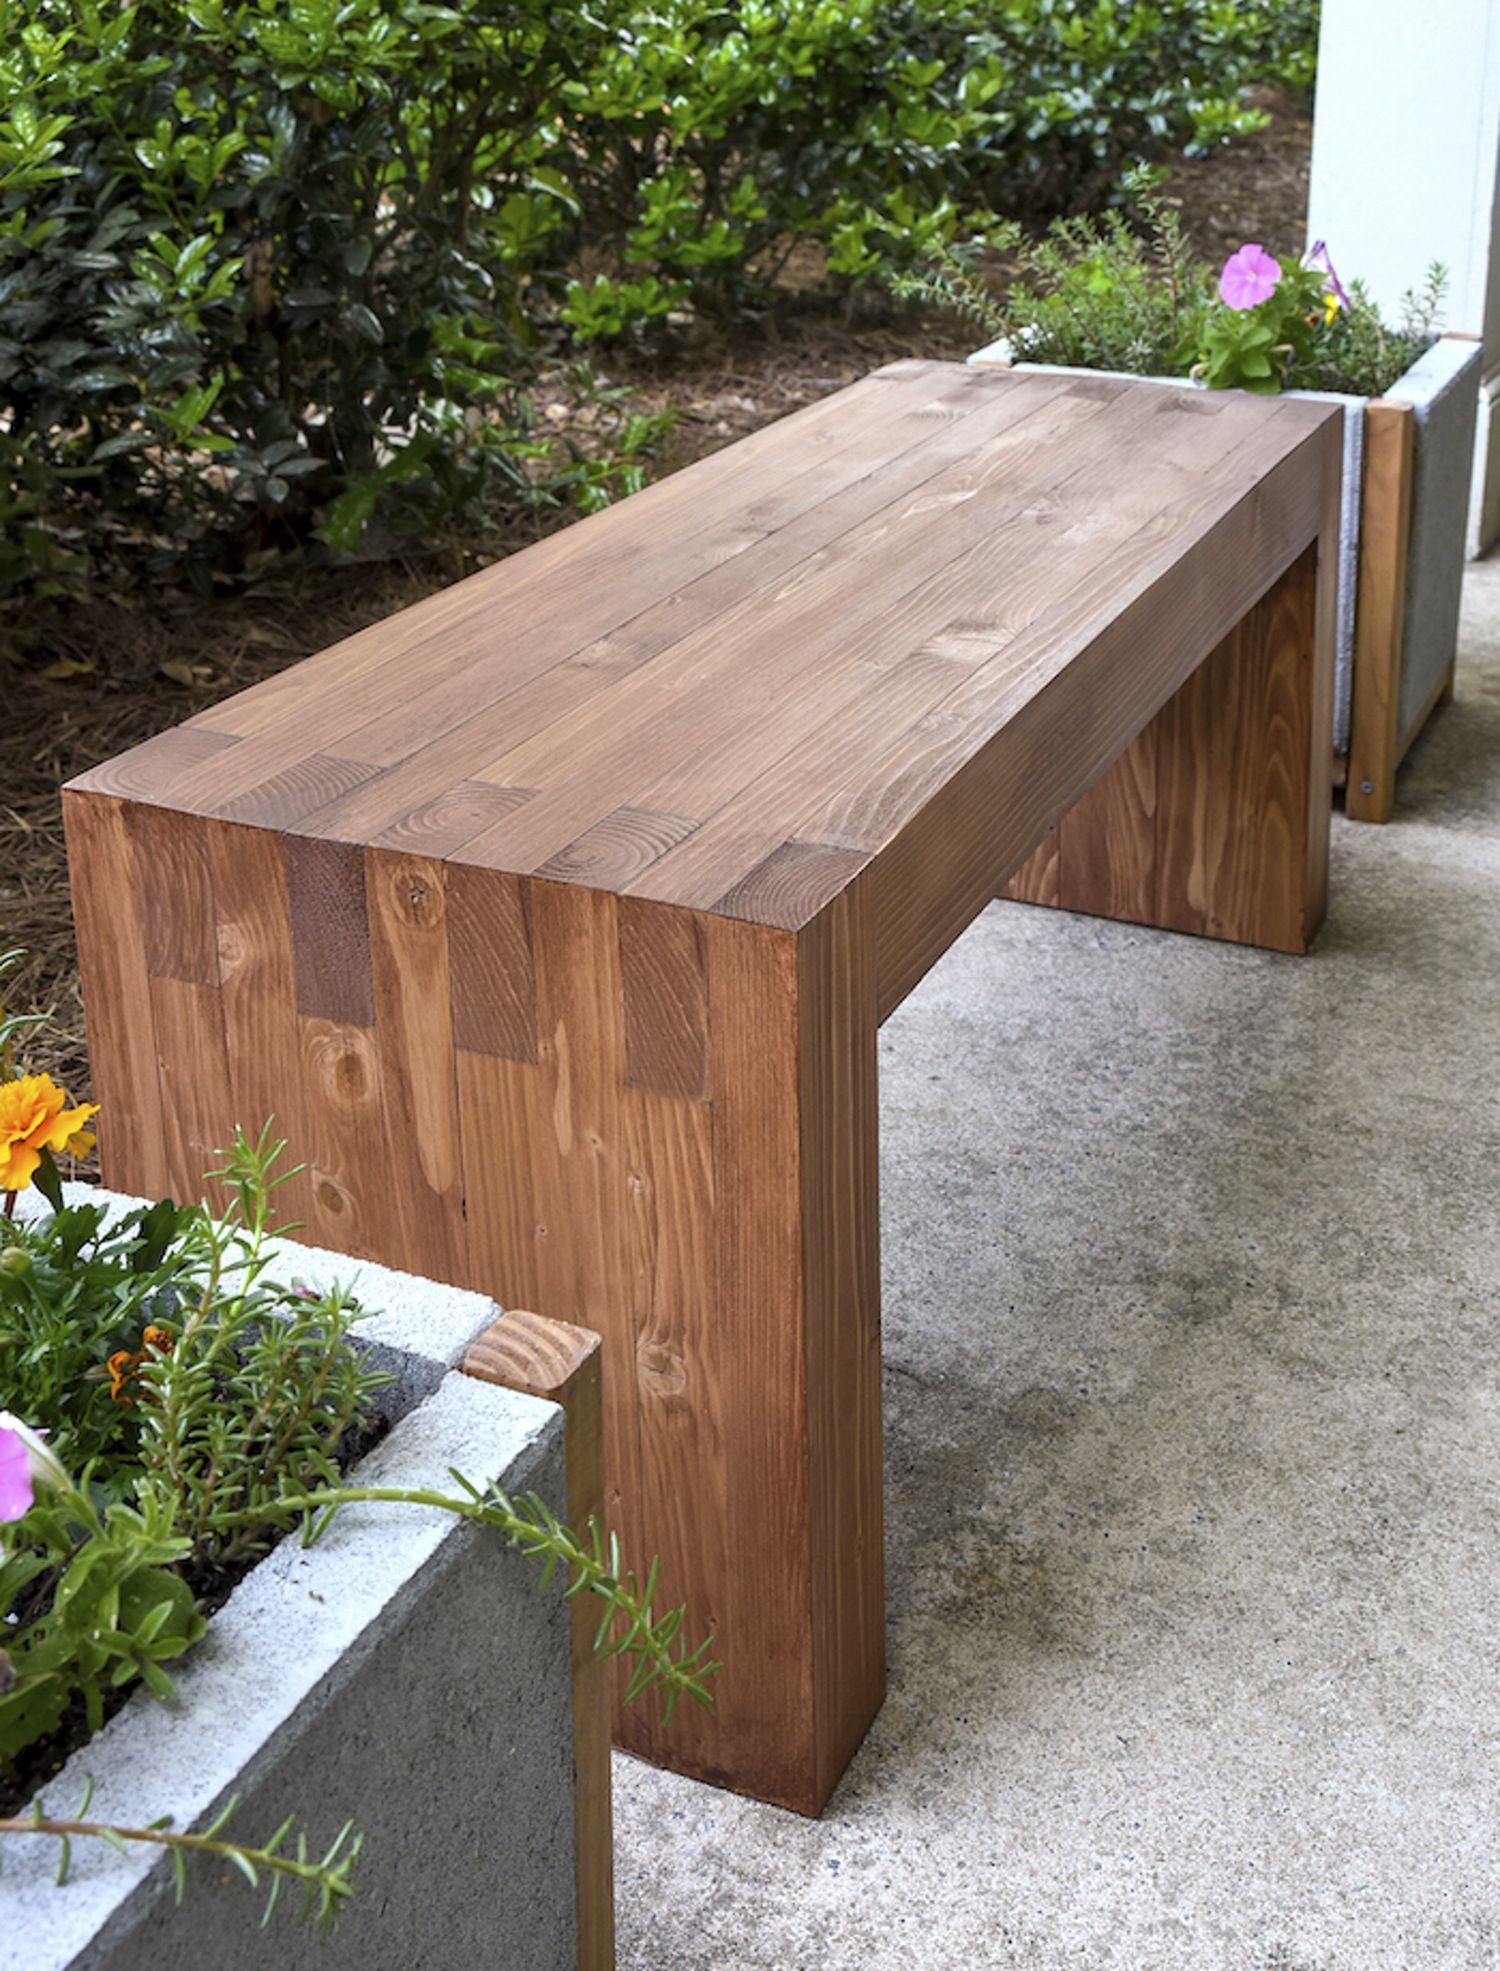 DIY Outdoor Wood Bench — Apartment Therapy Reader Submission